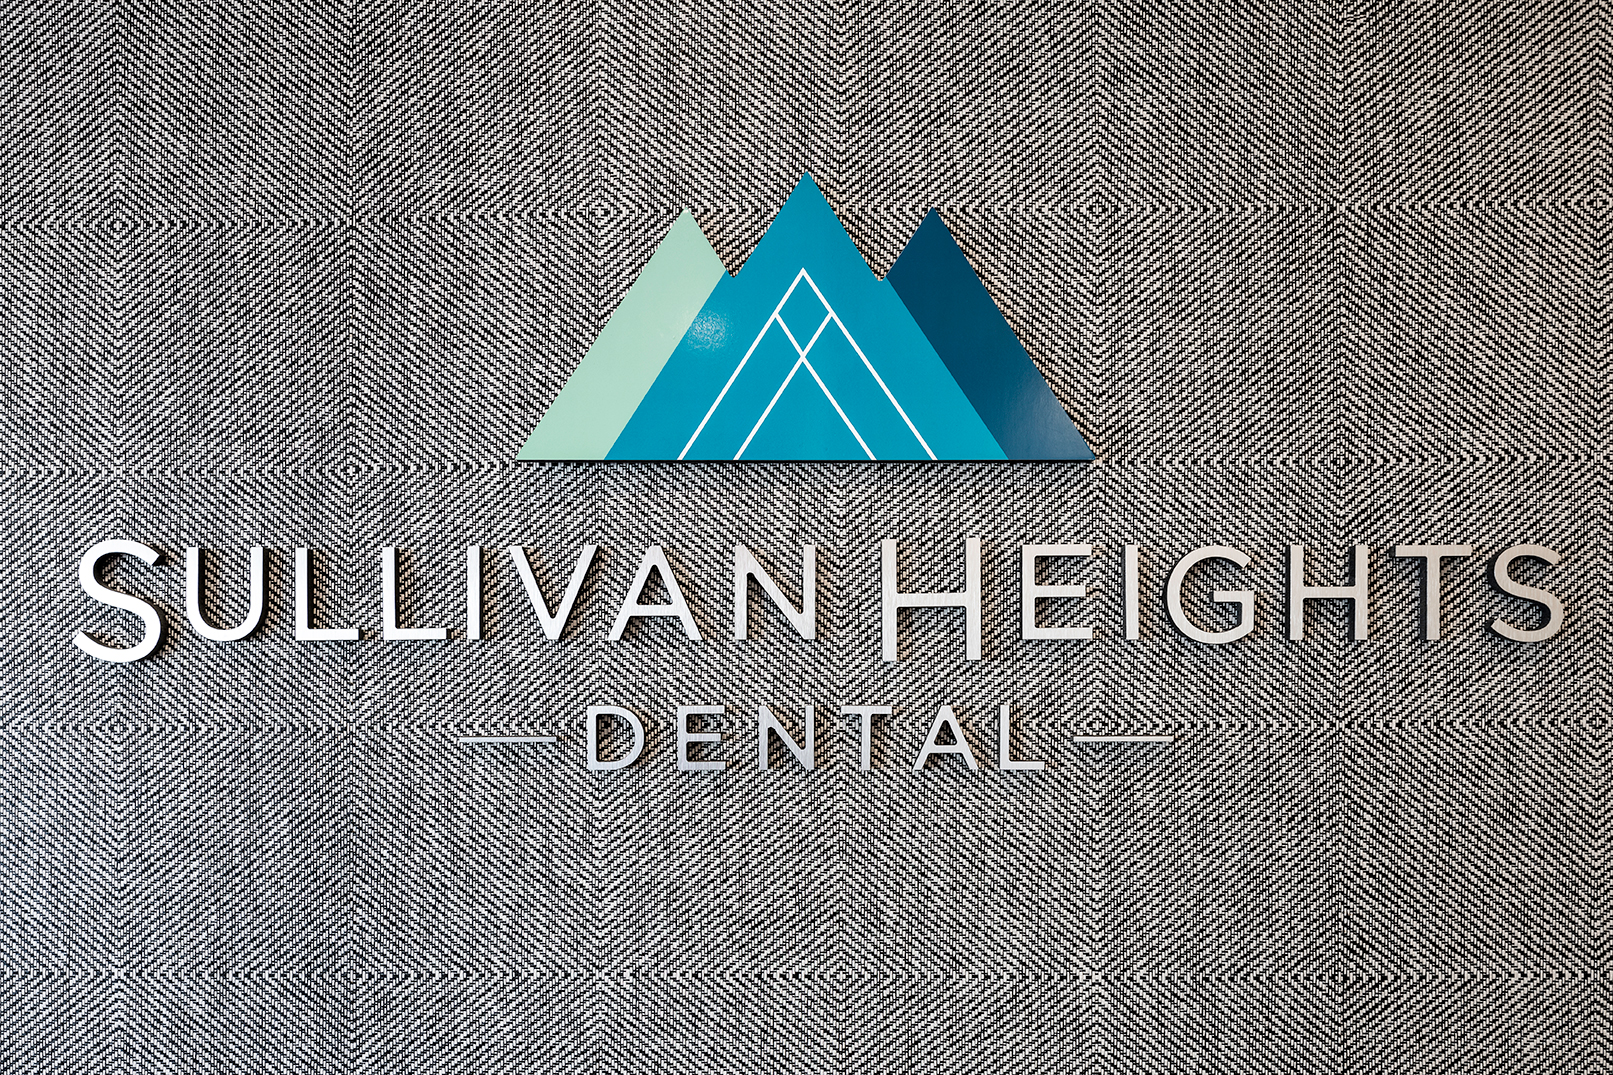 Arborlea Developments - Sullivan Heights Dental